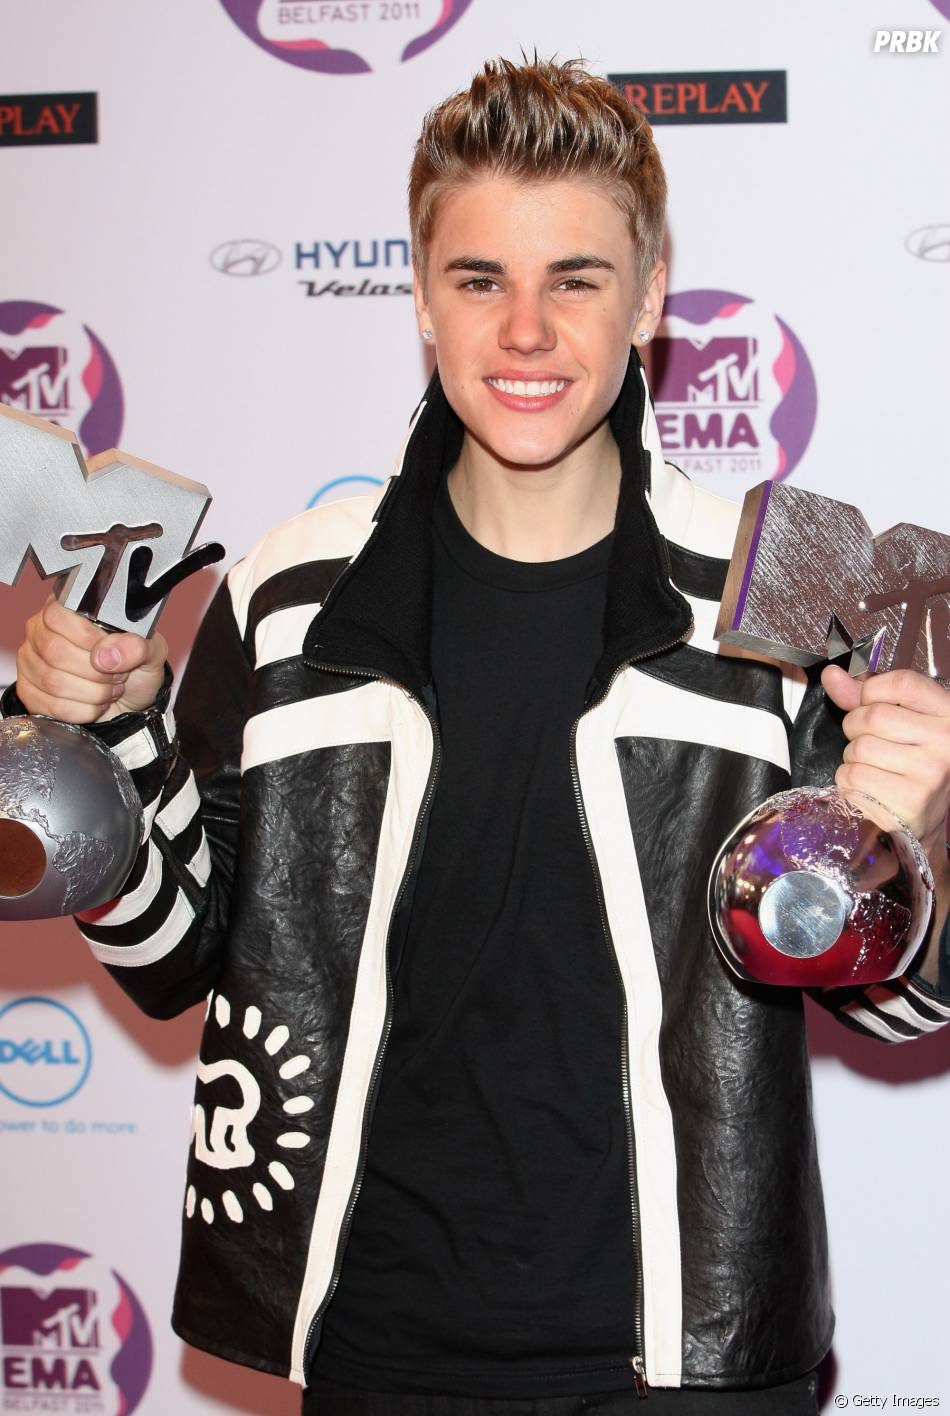 No final de 2011, Justin Bieber chocou com um look totalmente diferente no EMA